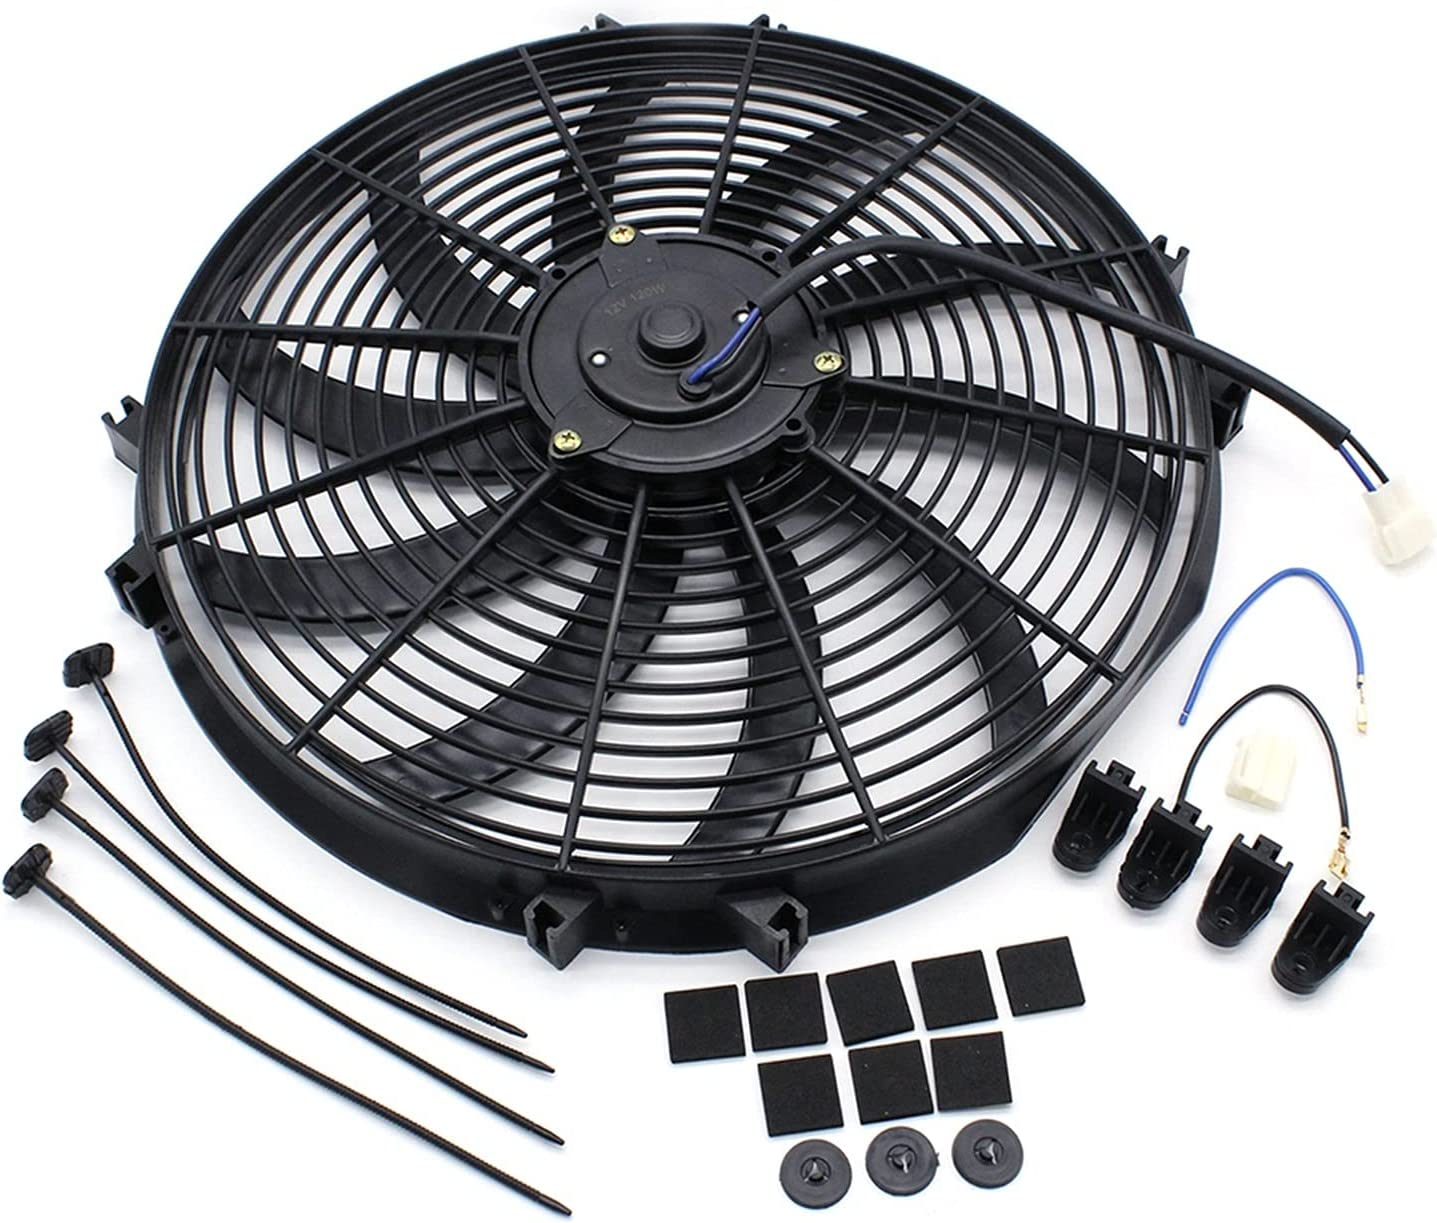 16 inch Max 77% OFF Push Pull Car Radiator Cooling S Fan Sl 12V Curved Seasonal Wrap Introduction Blade